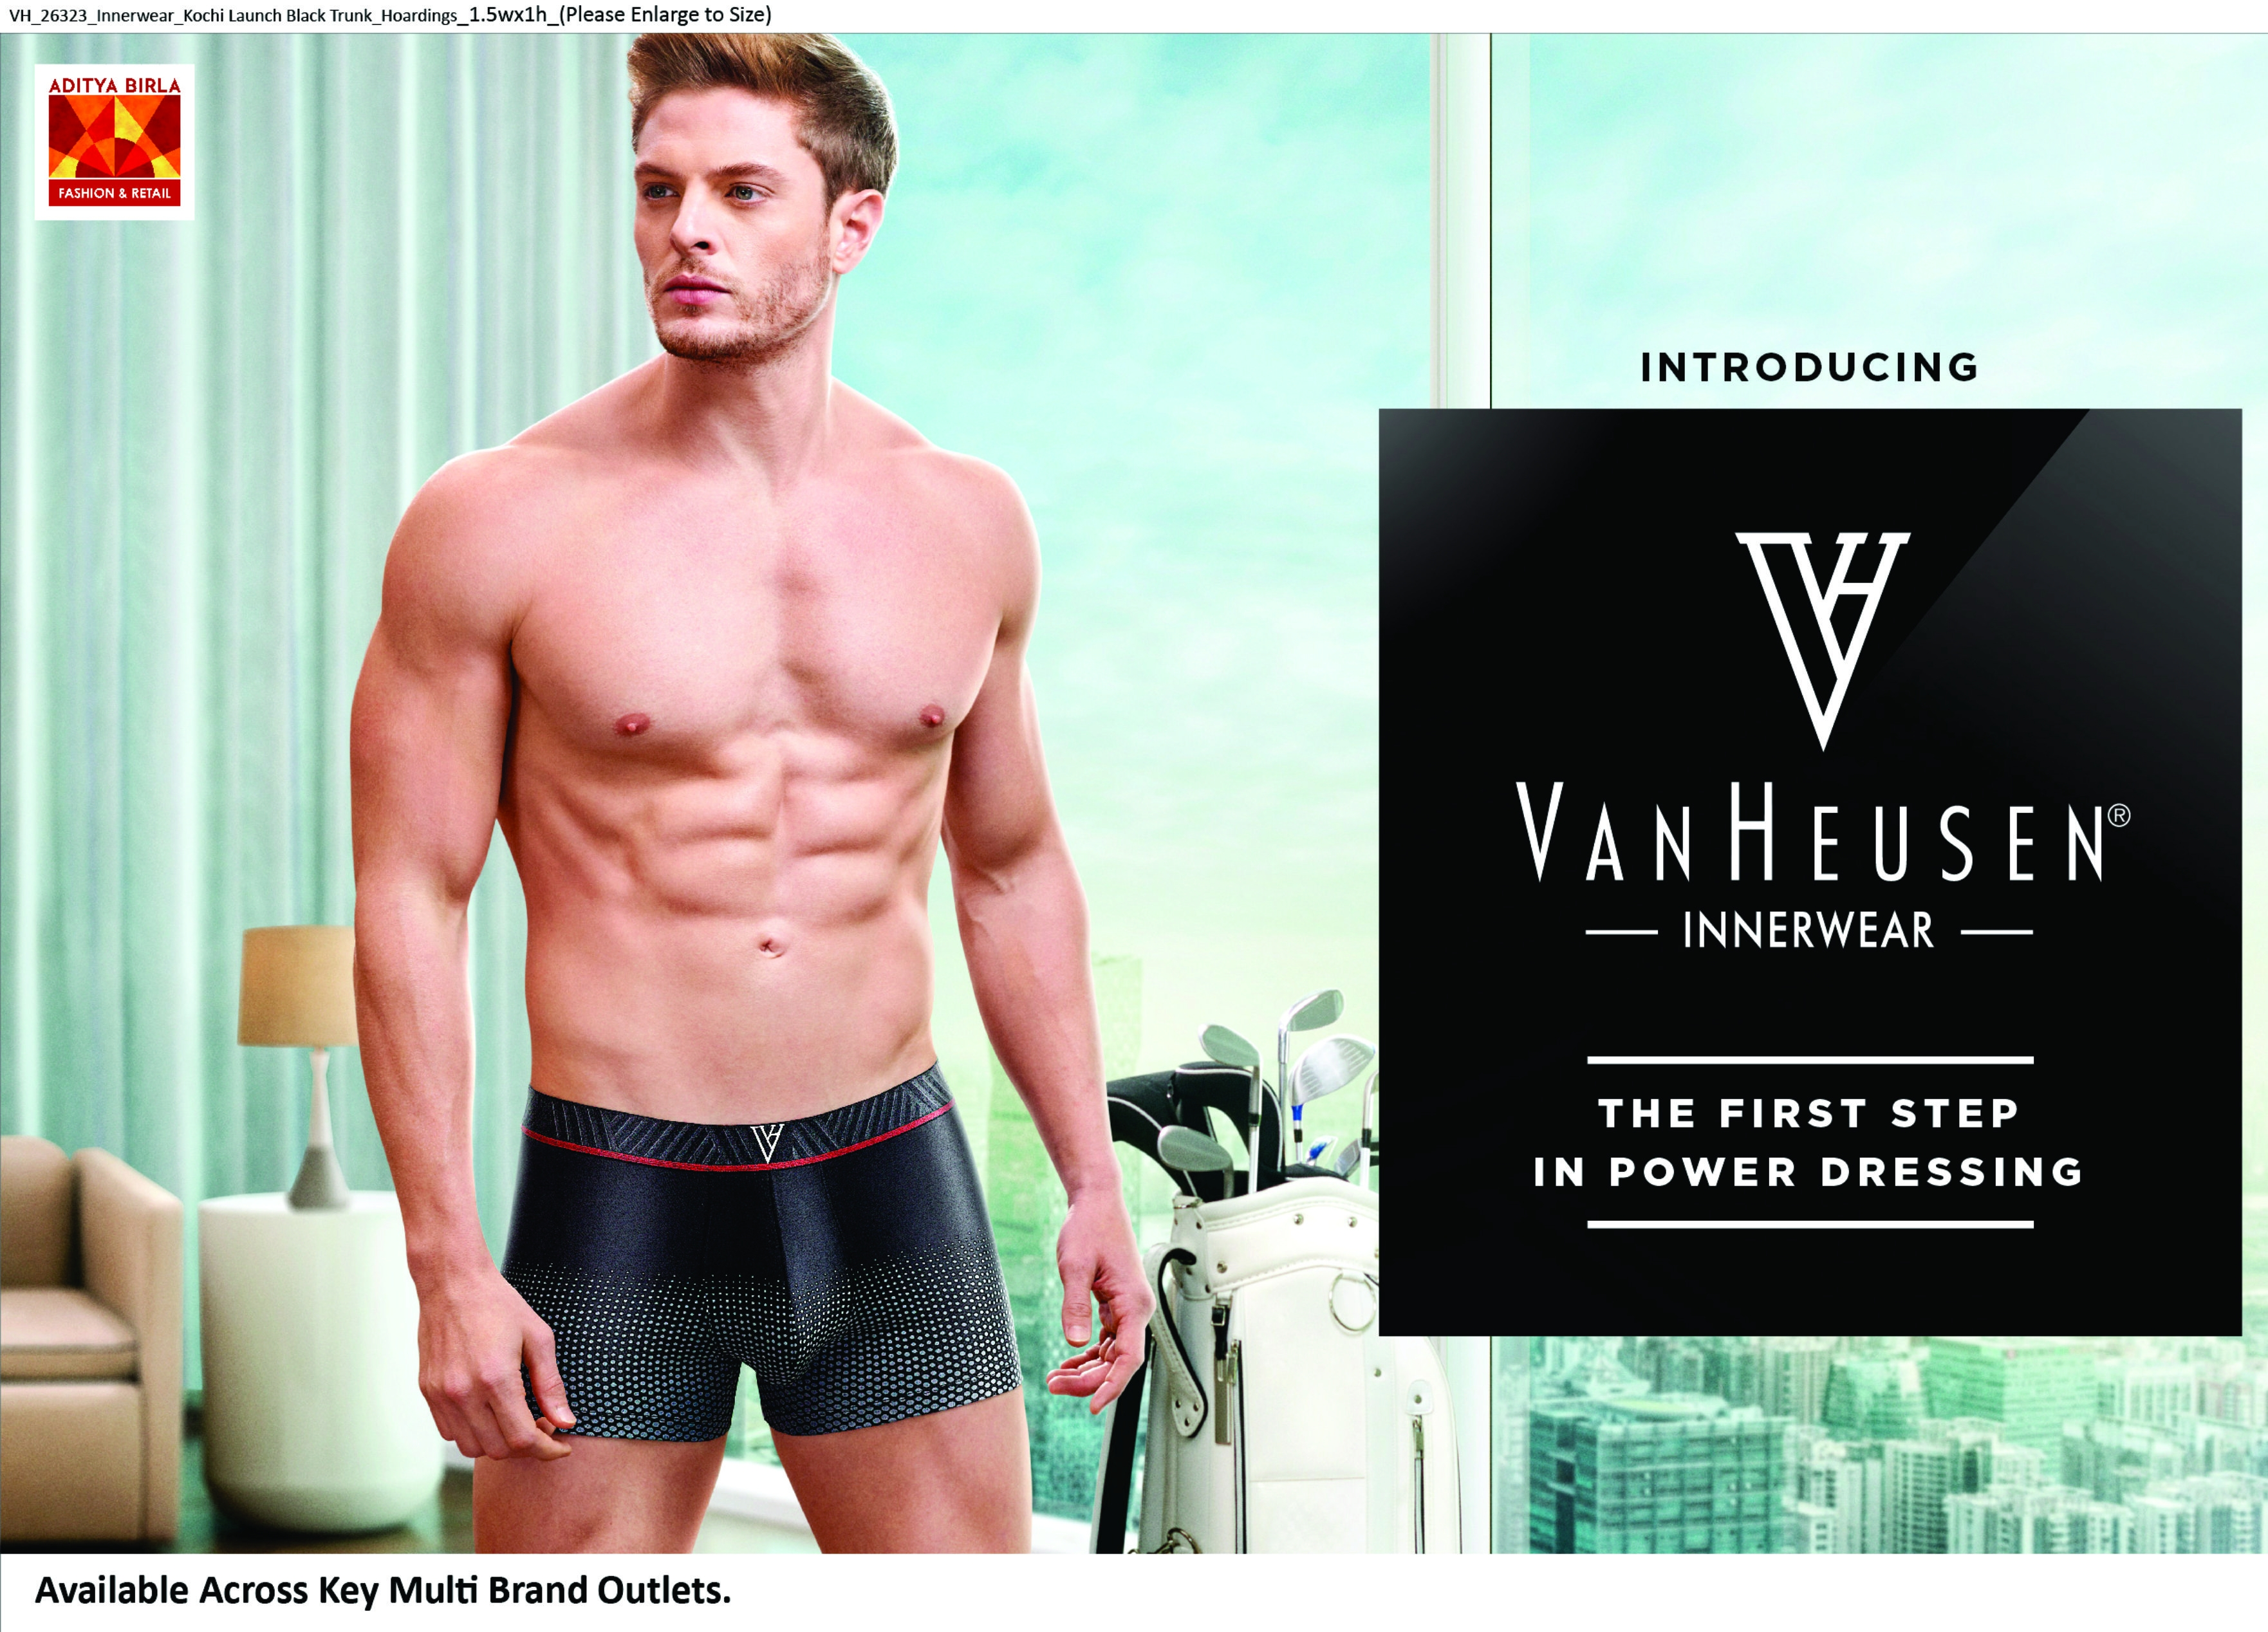 Crafted into fashion Van Heusen offers new lines!